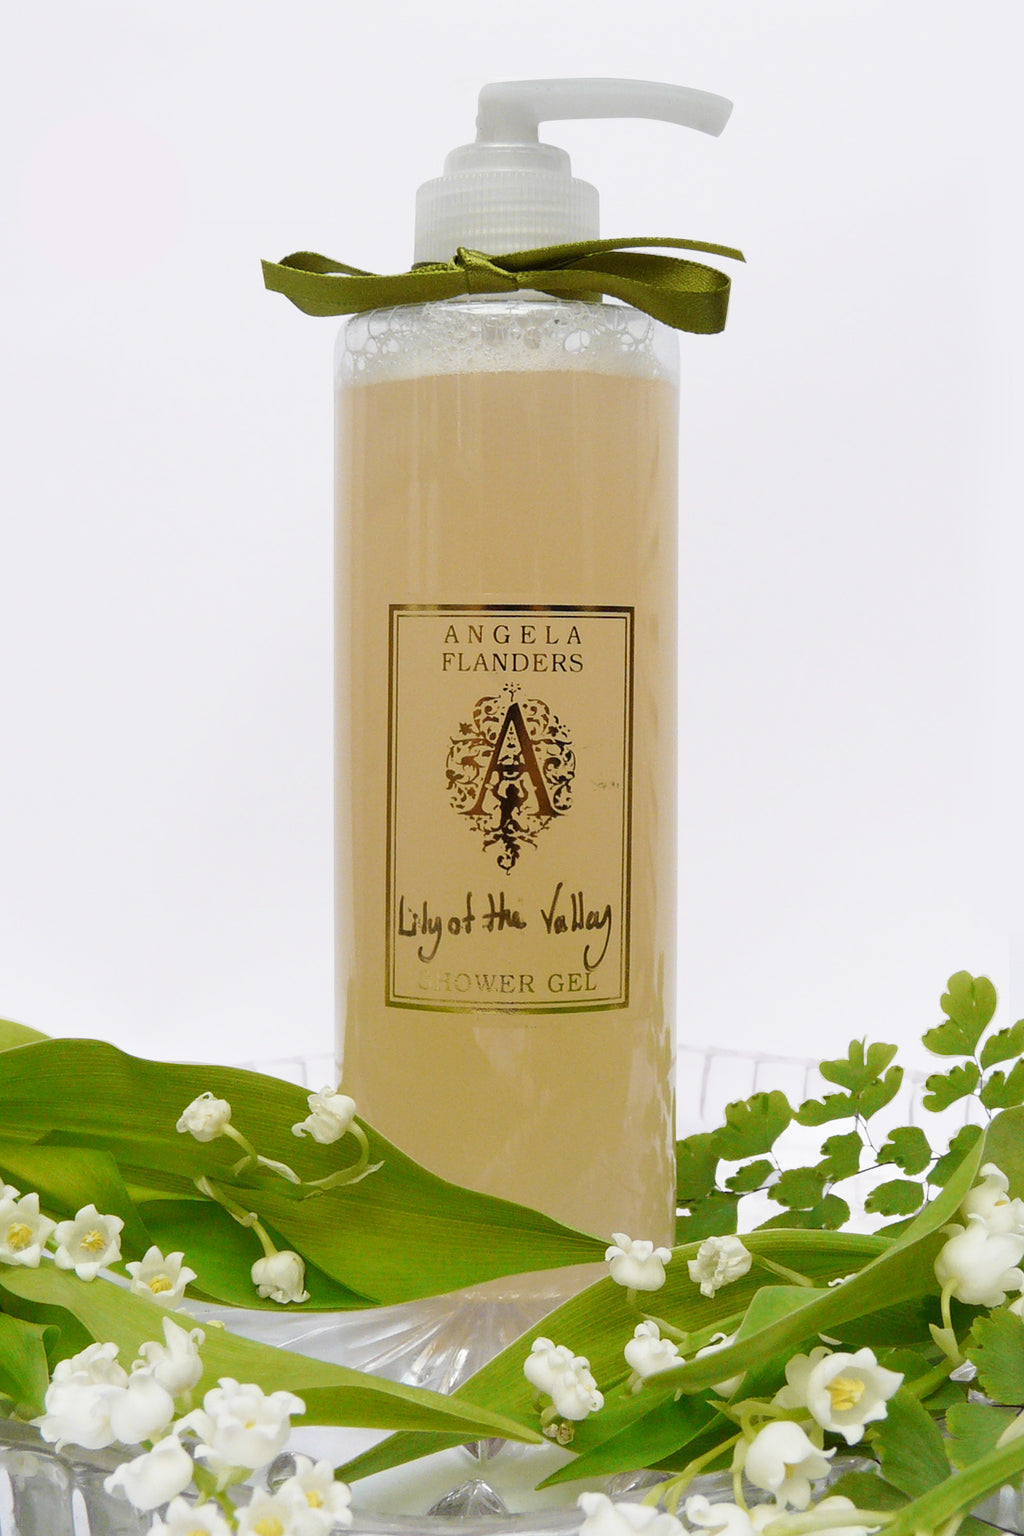 Angela Flanders Lily of the Valley Shower Gel 250ml